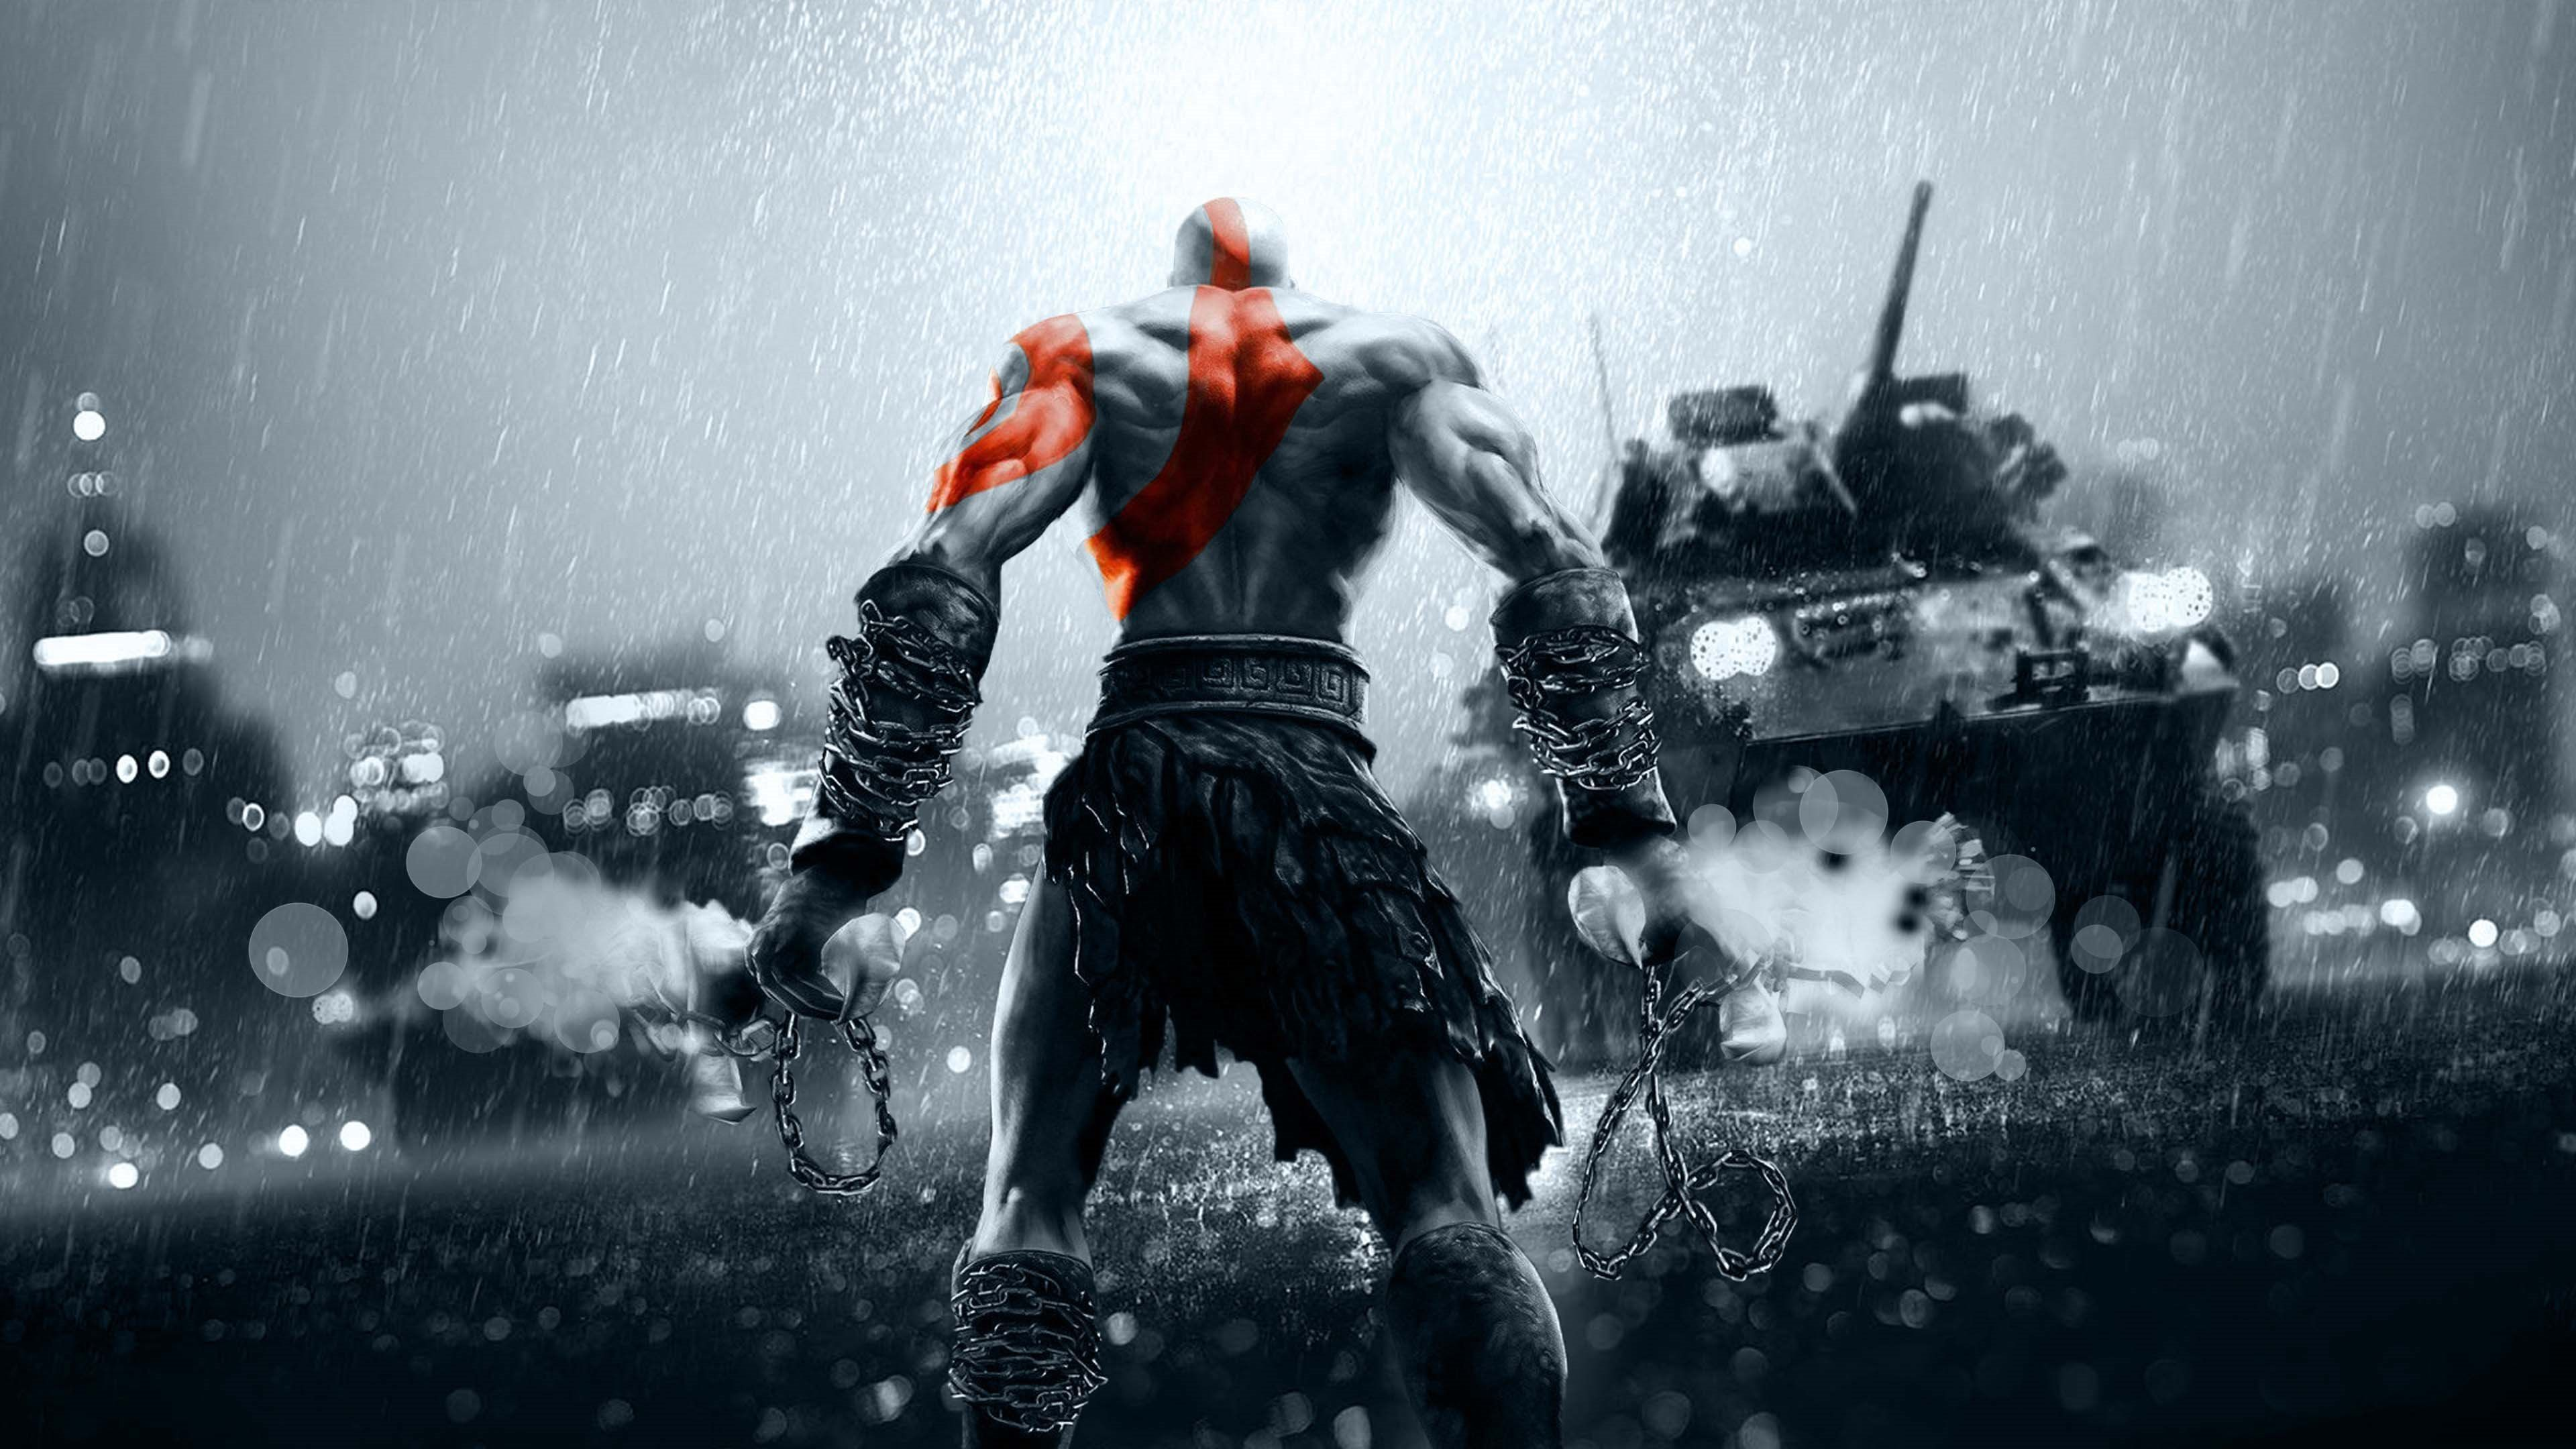 God Of War In 2020 God Of War Pc Games Wallpapers Gaming Wallpapers